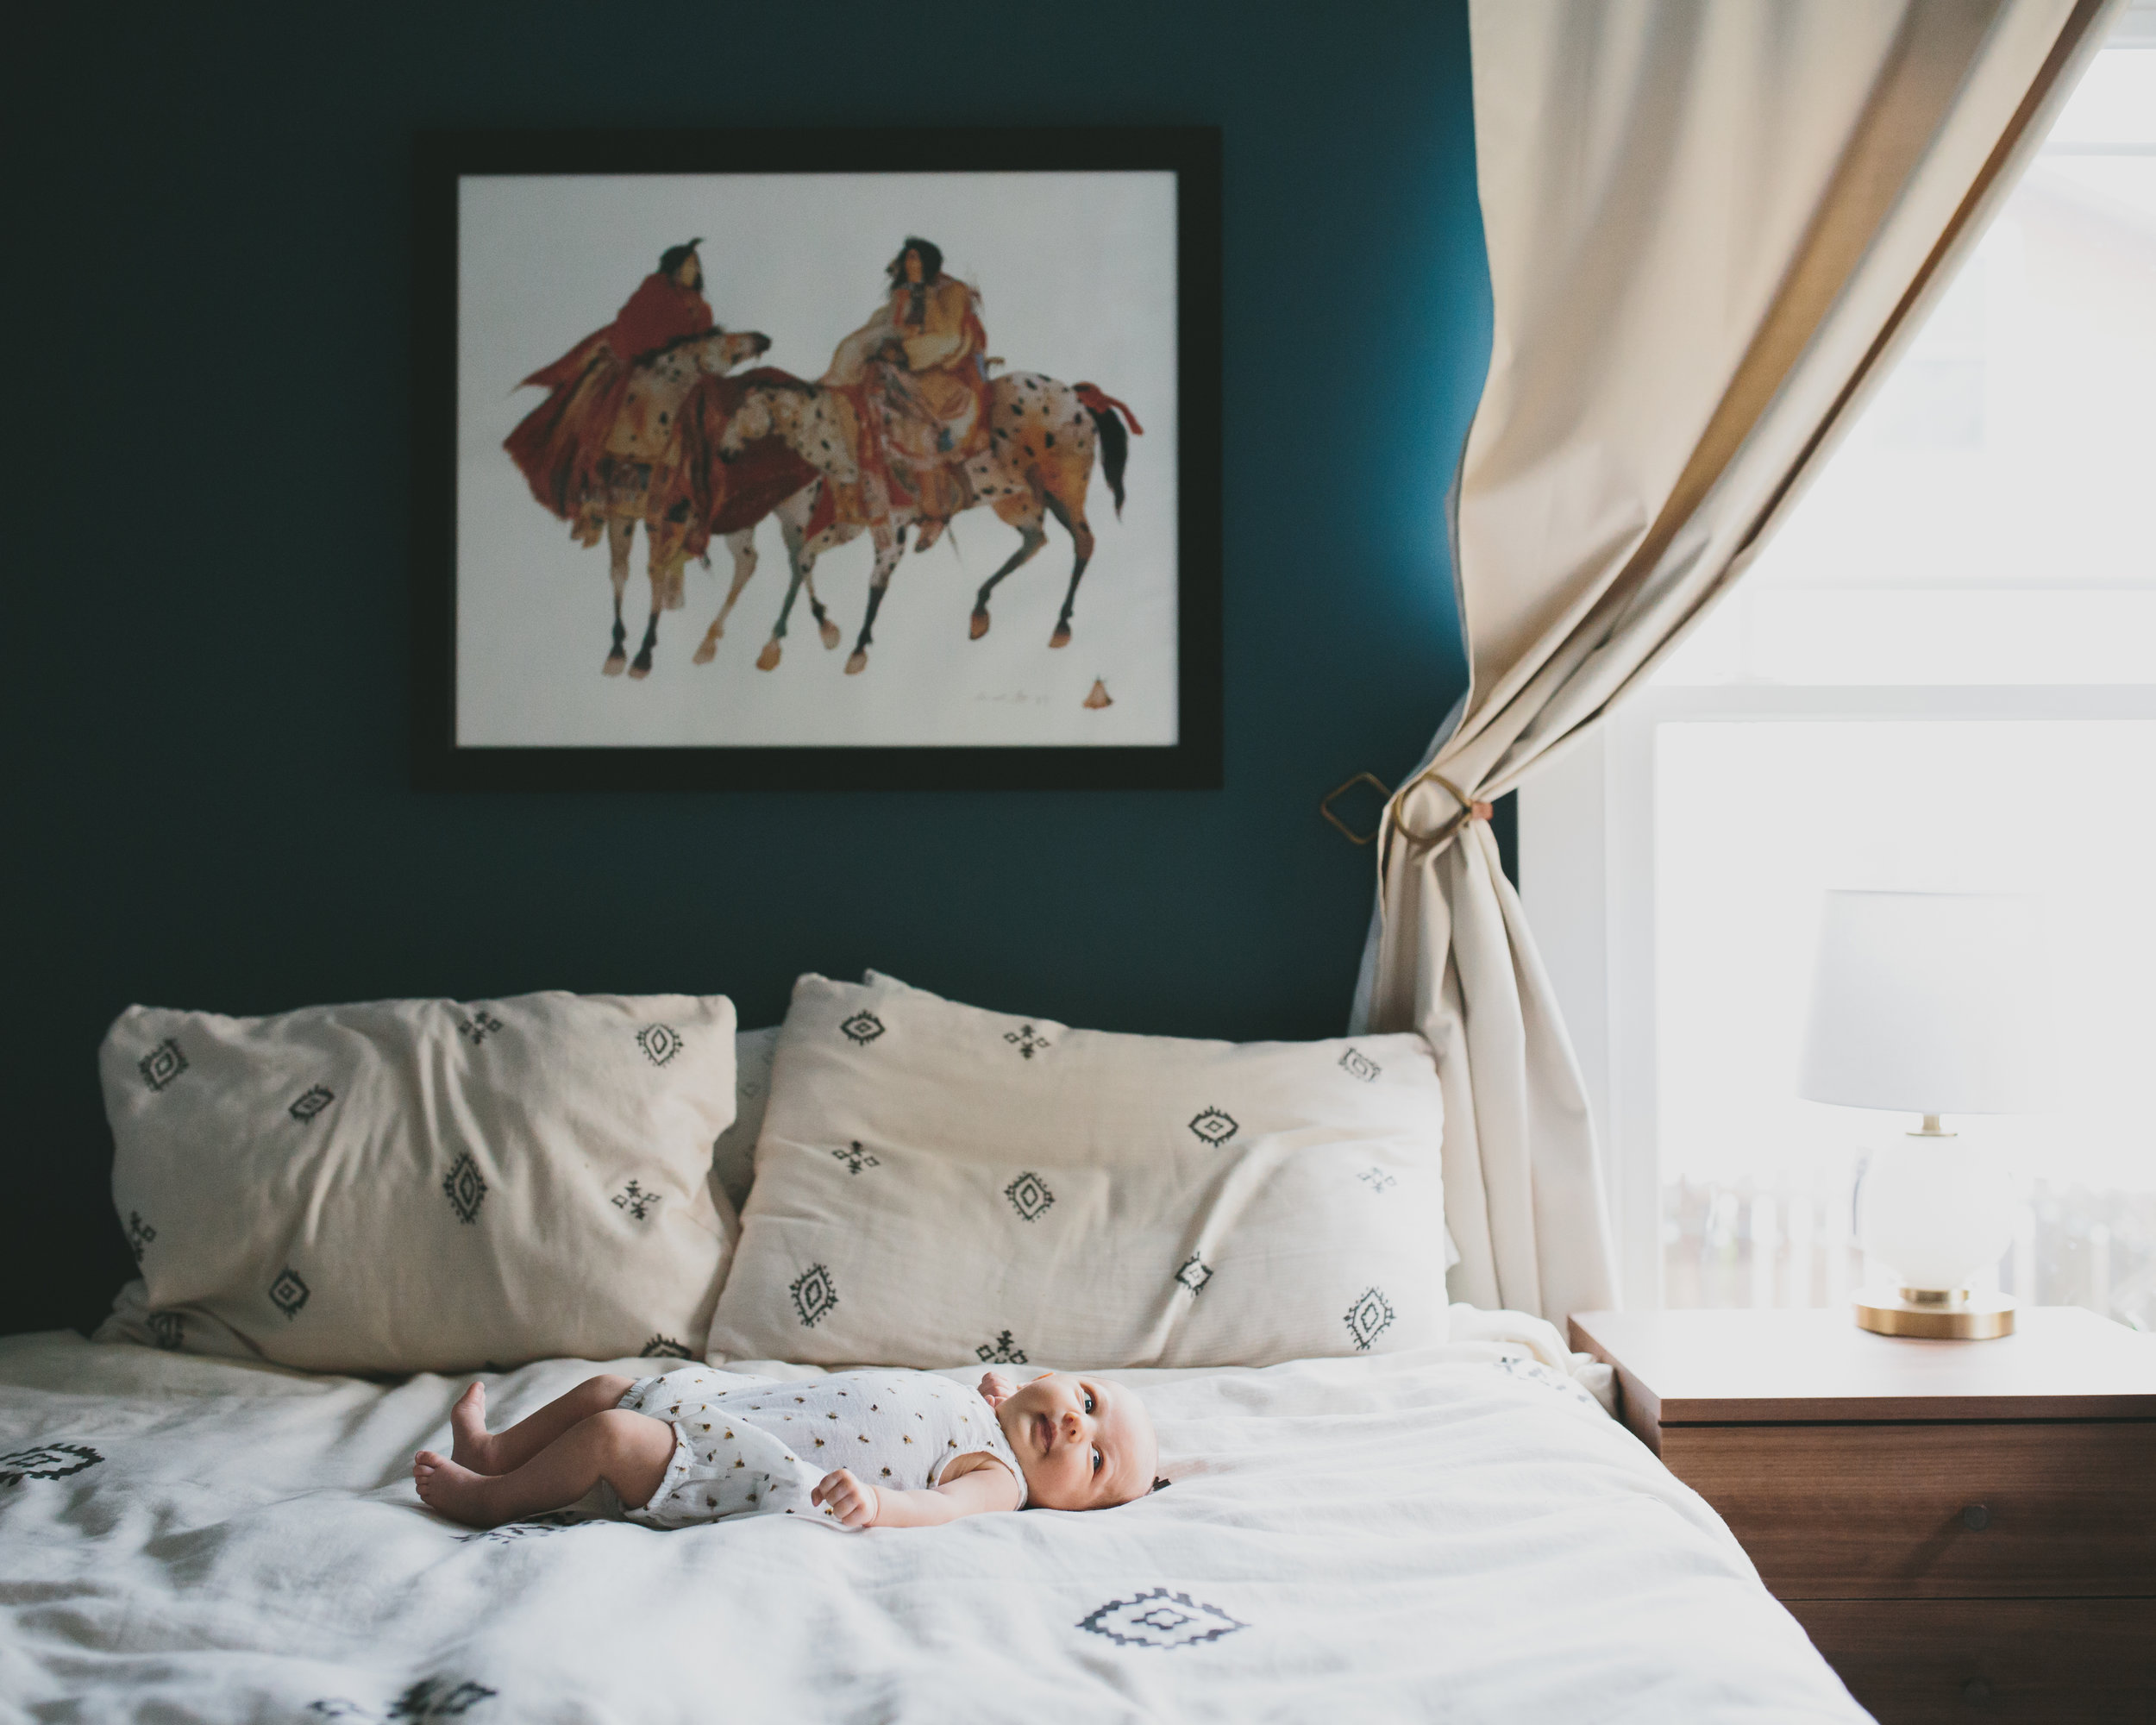 midcentury modern home decor | newborn photographer | Durham, NC | Merritt Chesson Photography